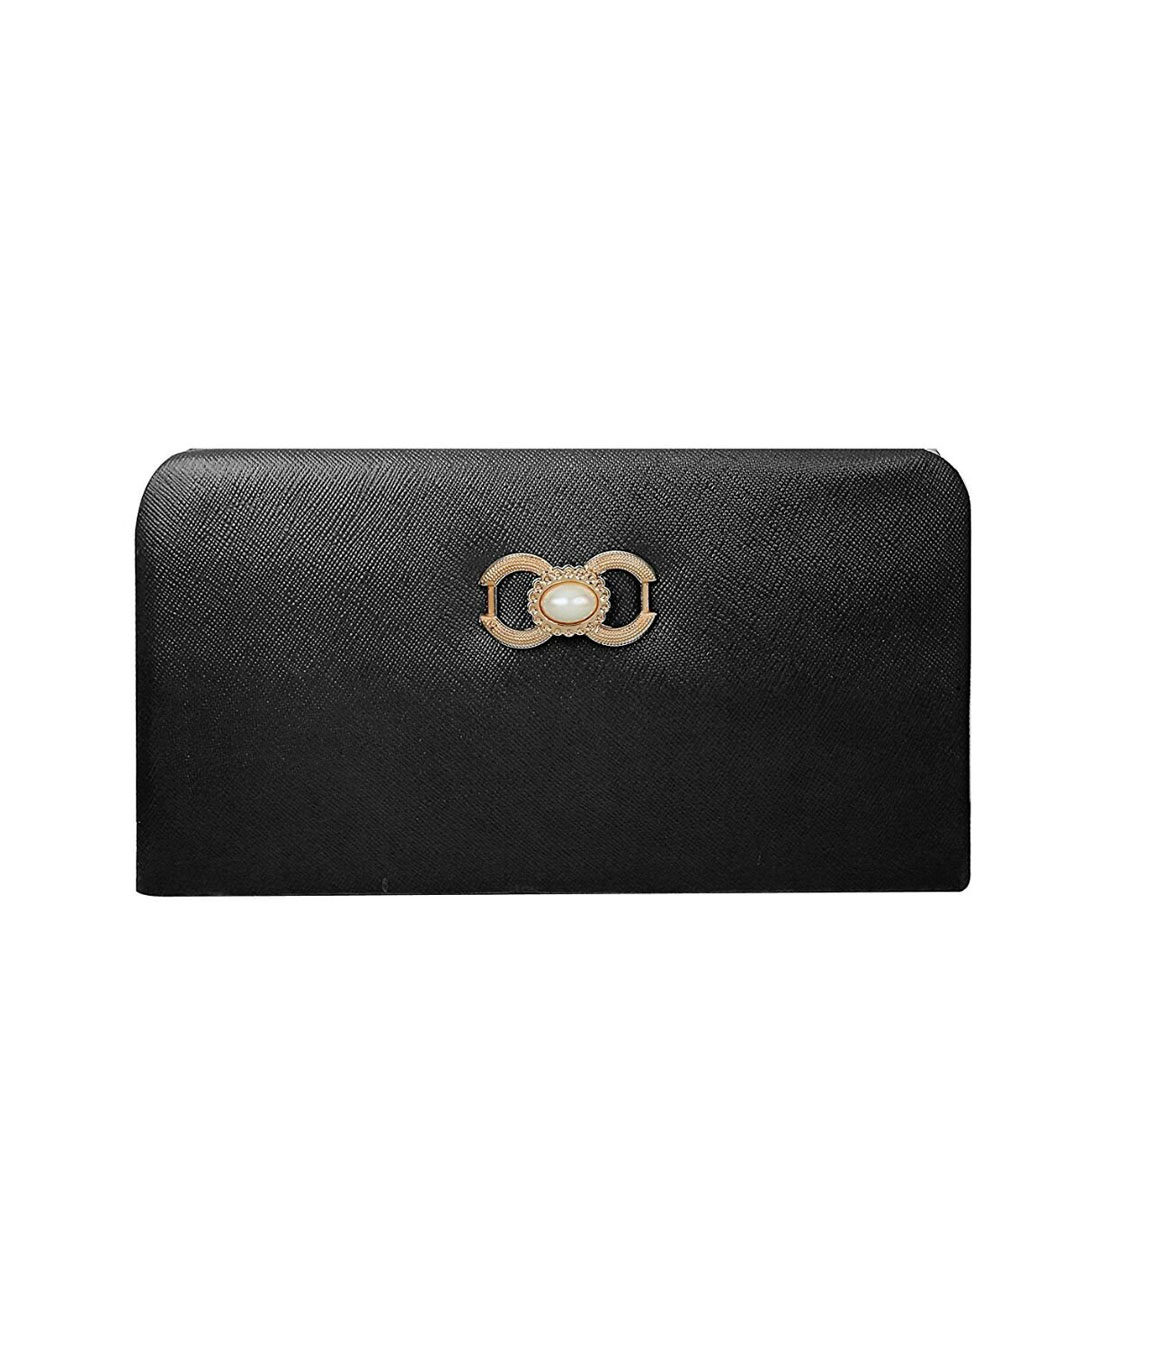 Rasm Lifestyle Beautiful Black Textured Clutch for Women and Girls